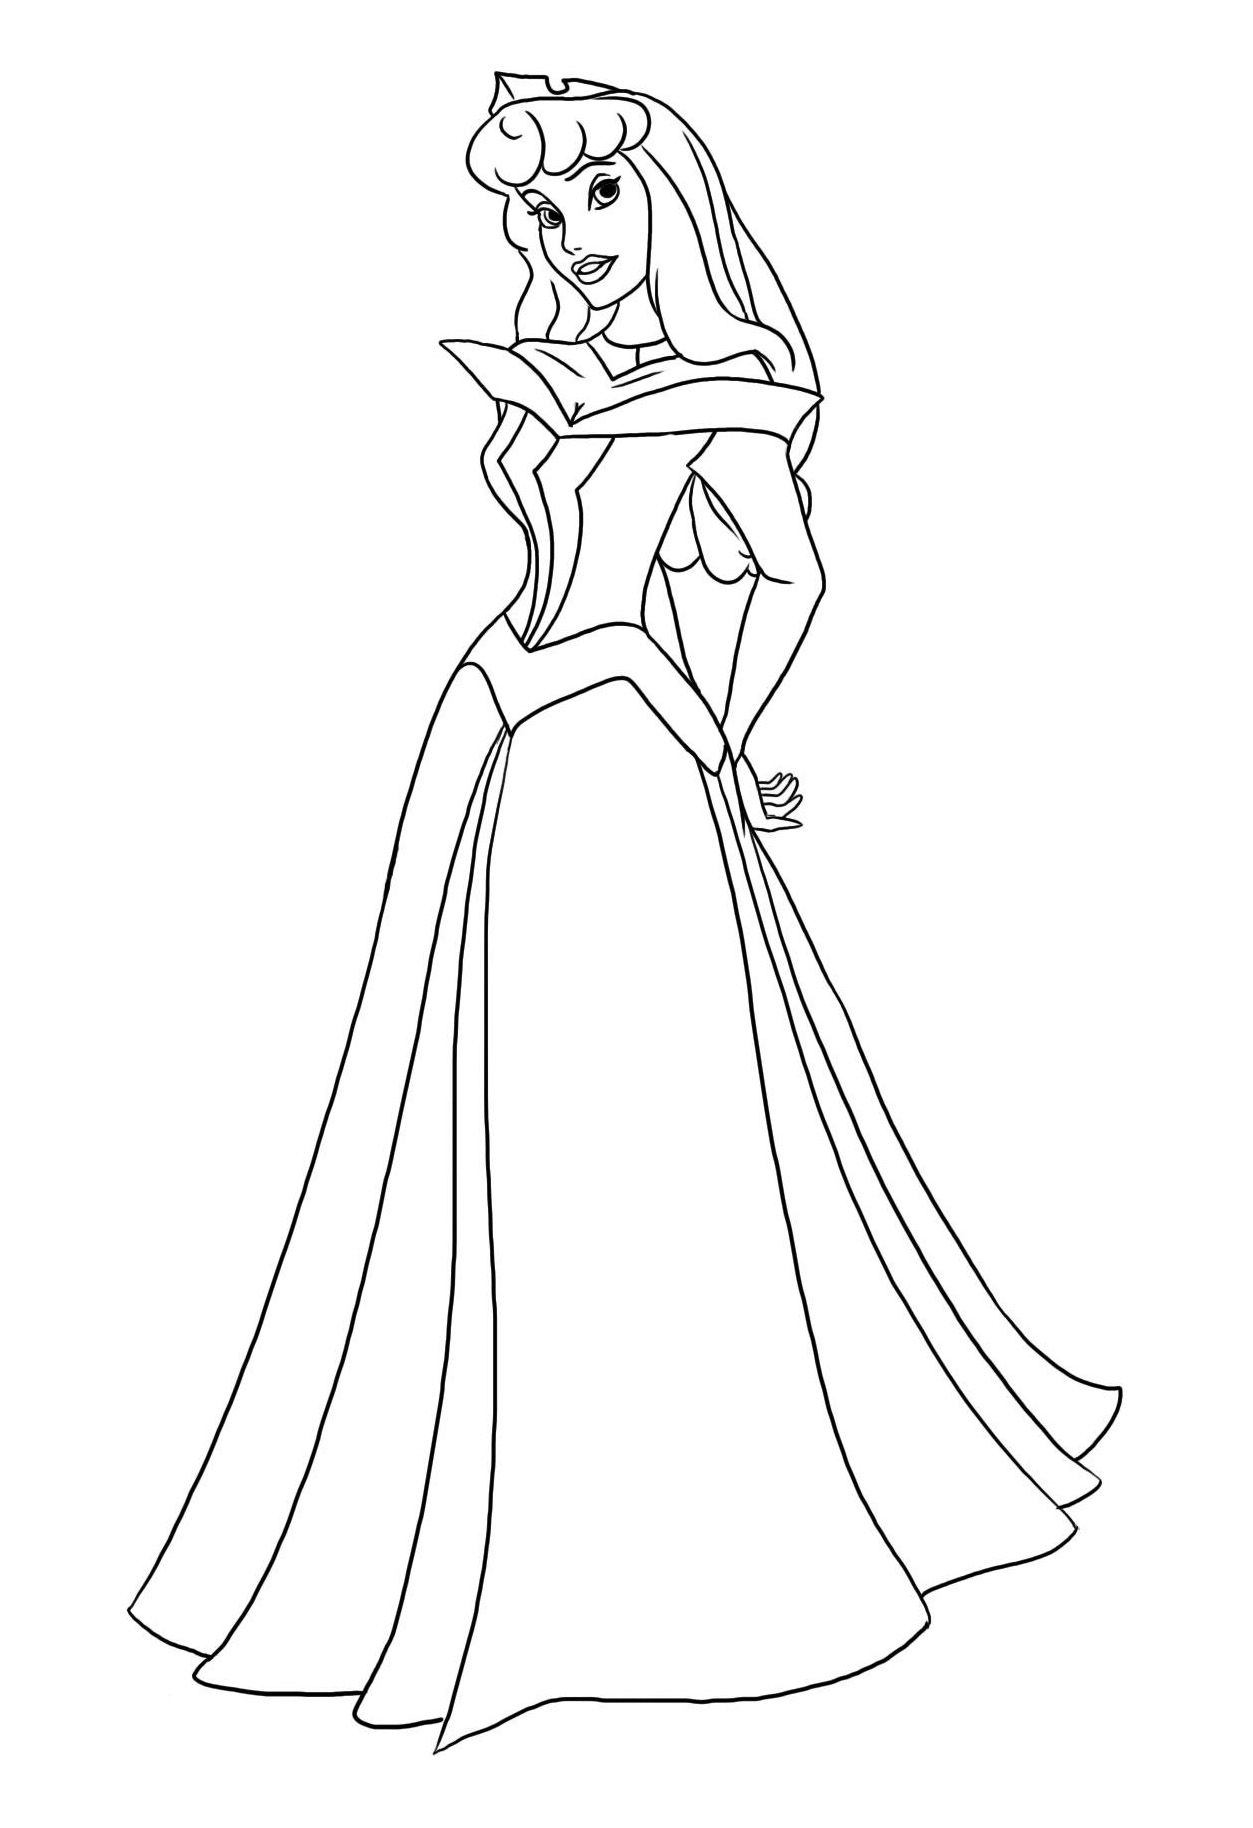 Coloriage princesse colorier dessin imprimer animaux princess coloring pages disney - Coloriages princesse ...